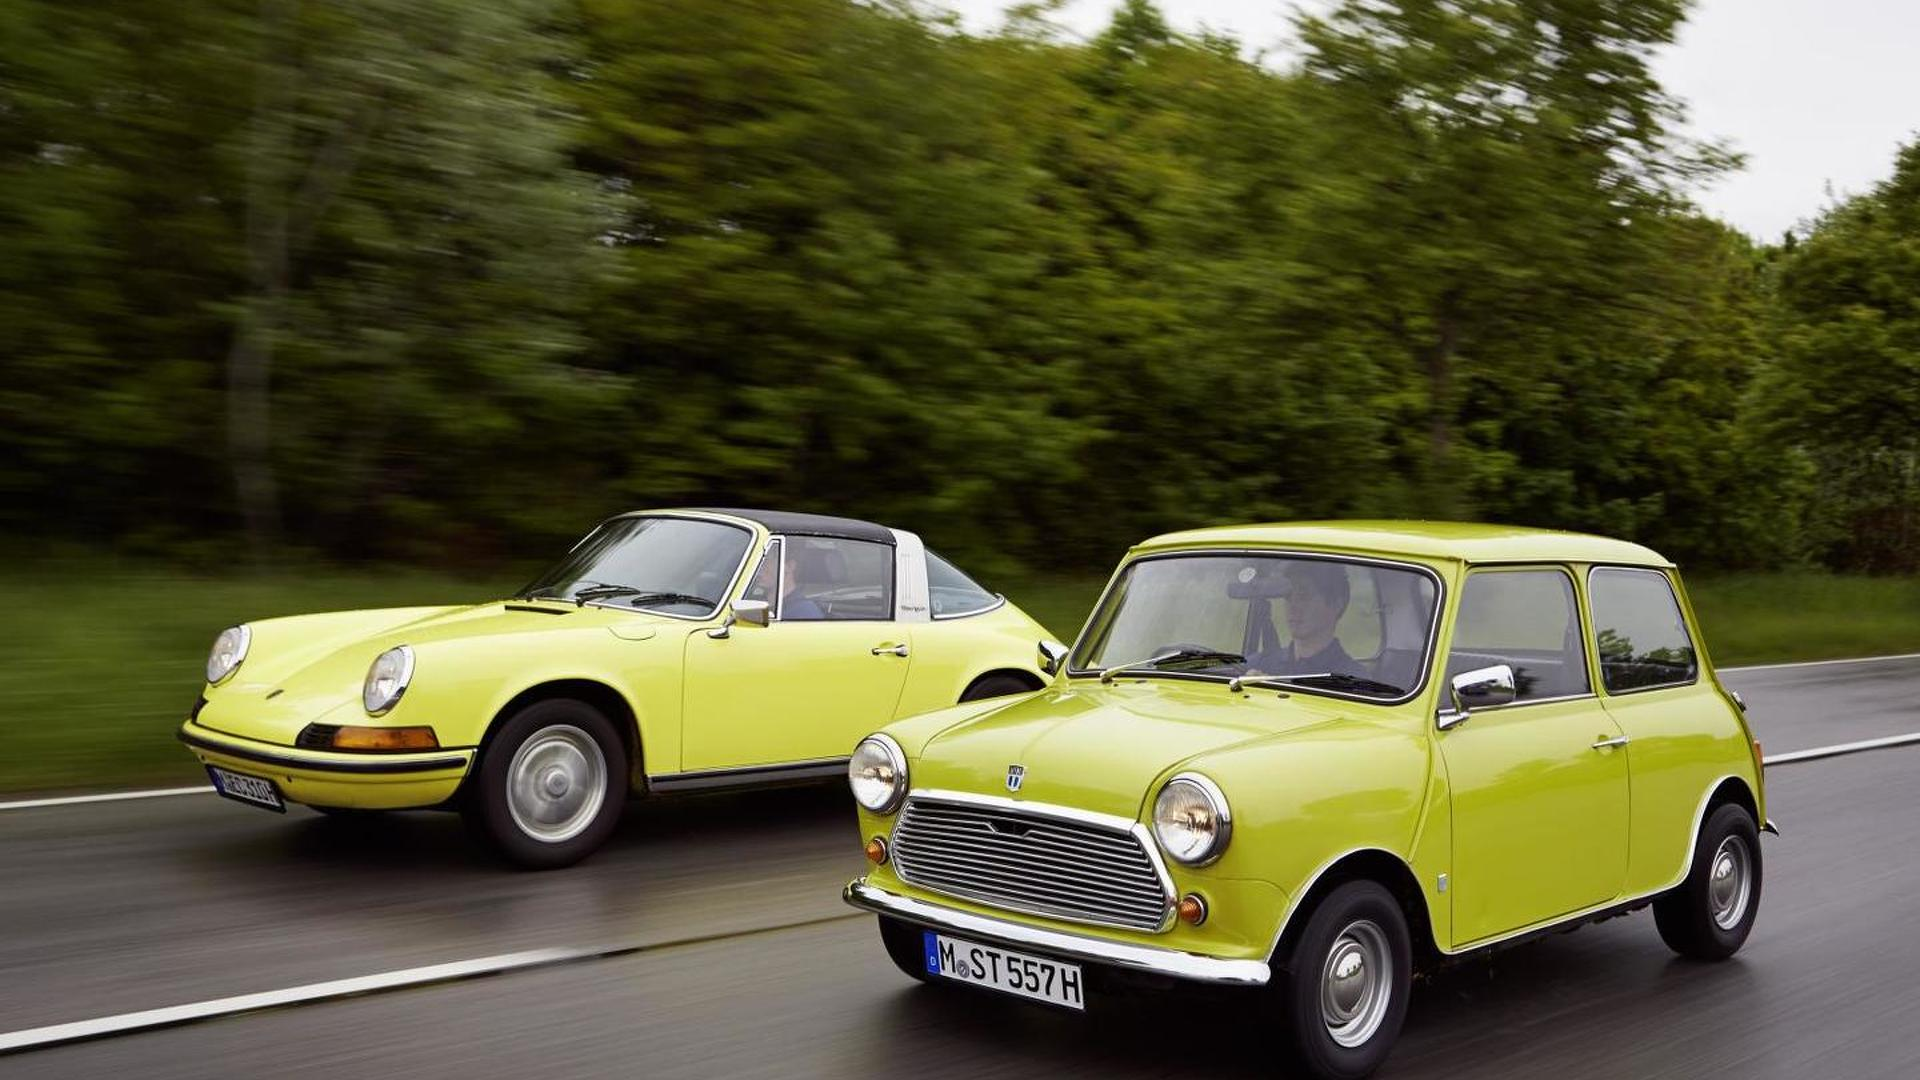 Classic MINI says happy 50th birthday to the Porsche 911